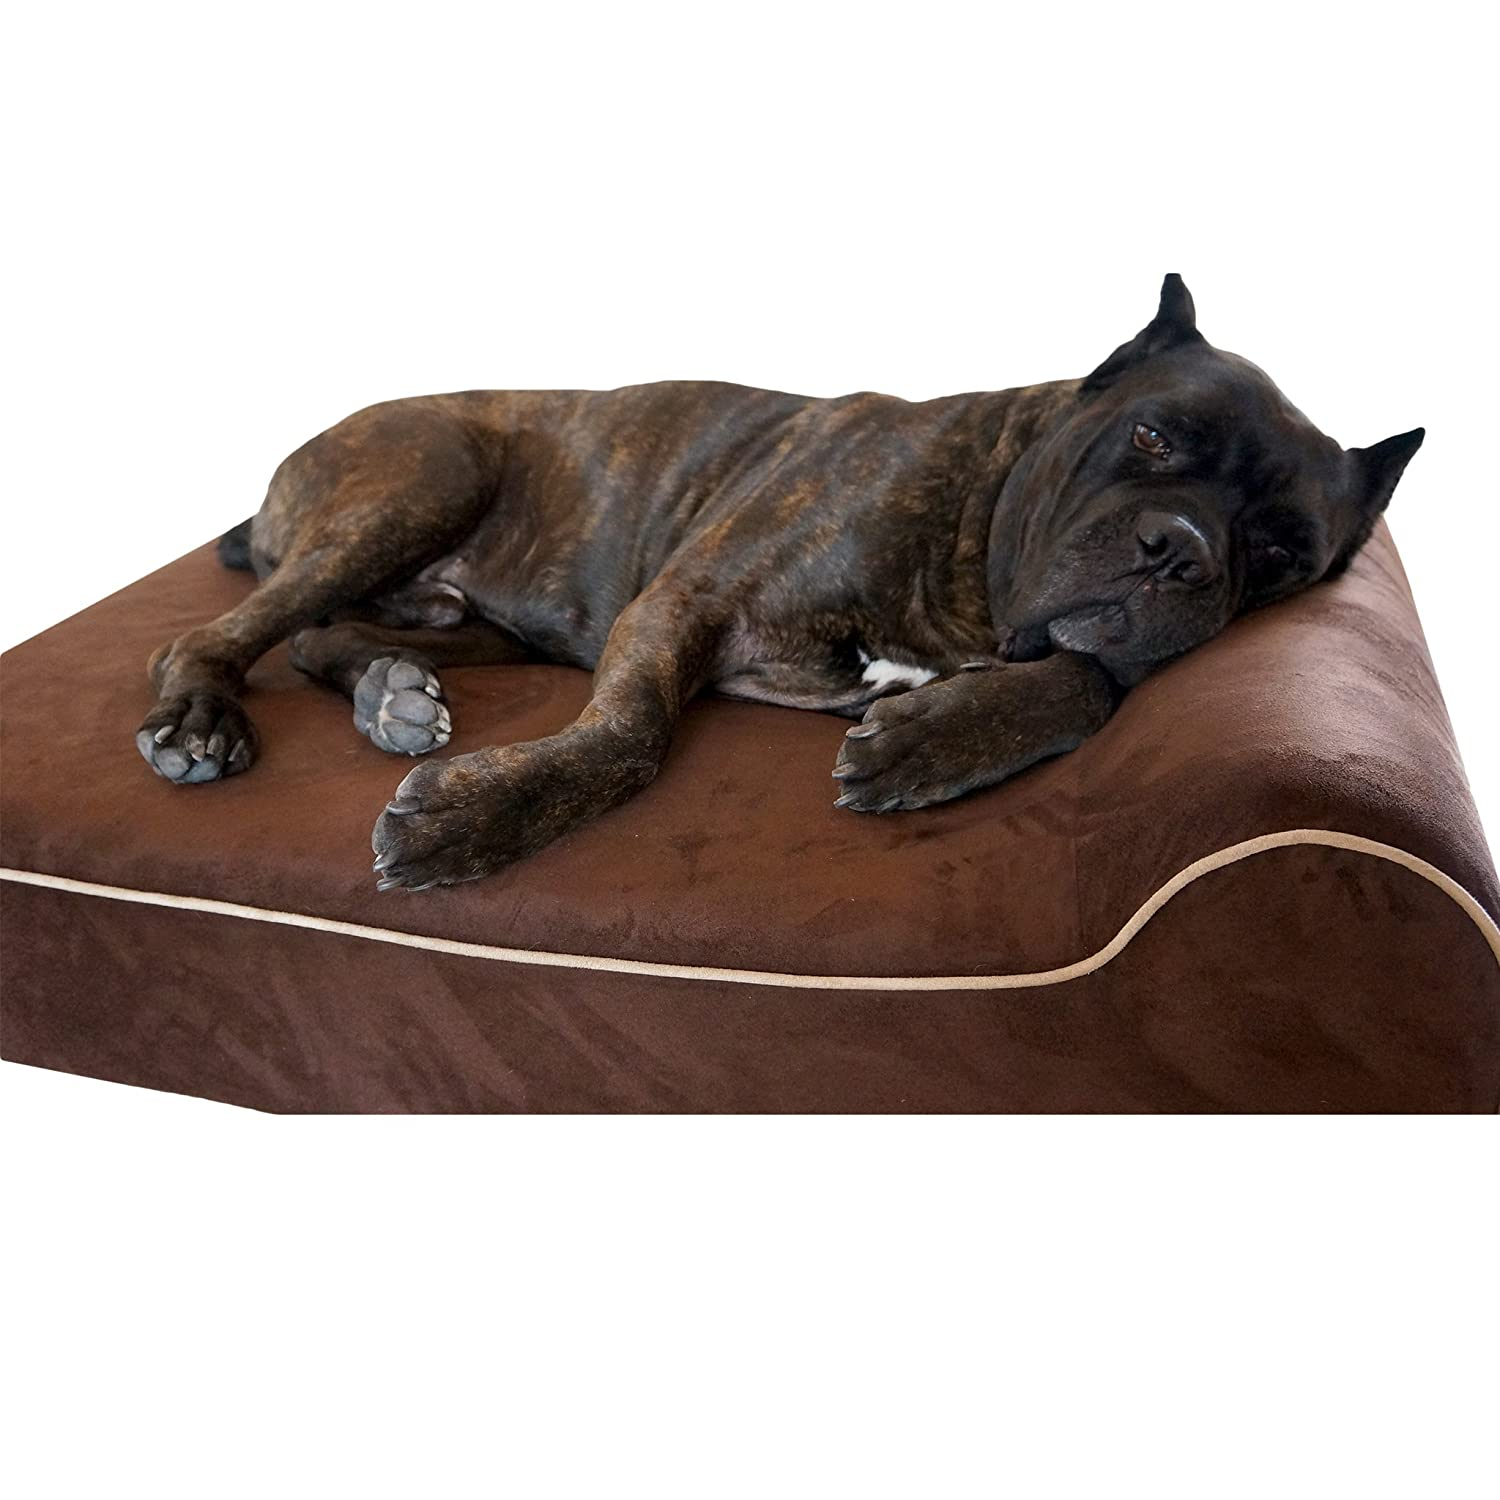 Bully Beds Orthopedic Memory Foam Dog Bed – Waterproof Bolster Beds for Large and Extra Large Dogs – Durable Pet Bed for Big Dogs